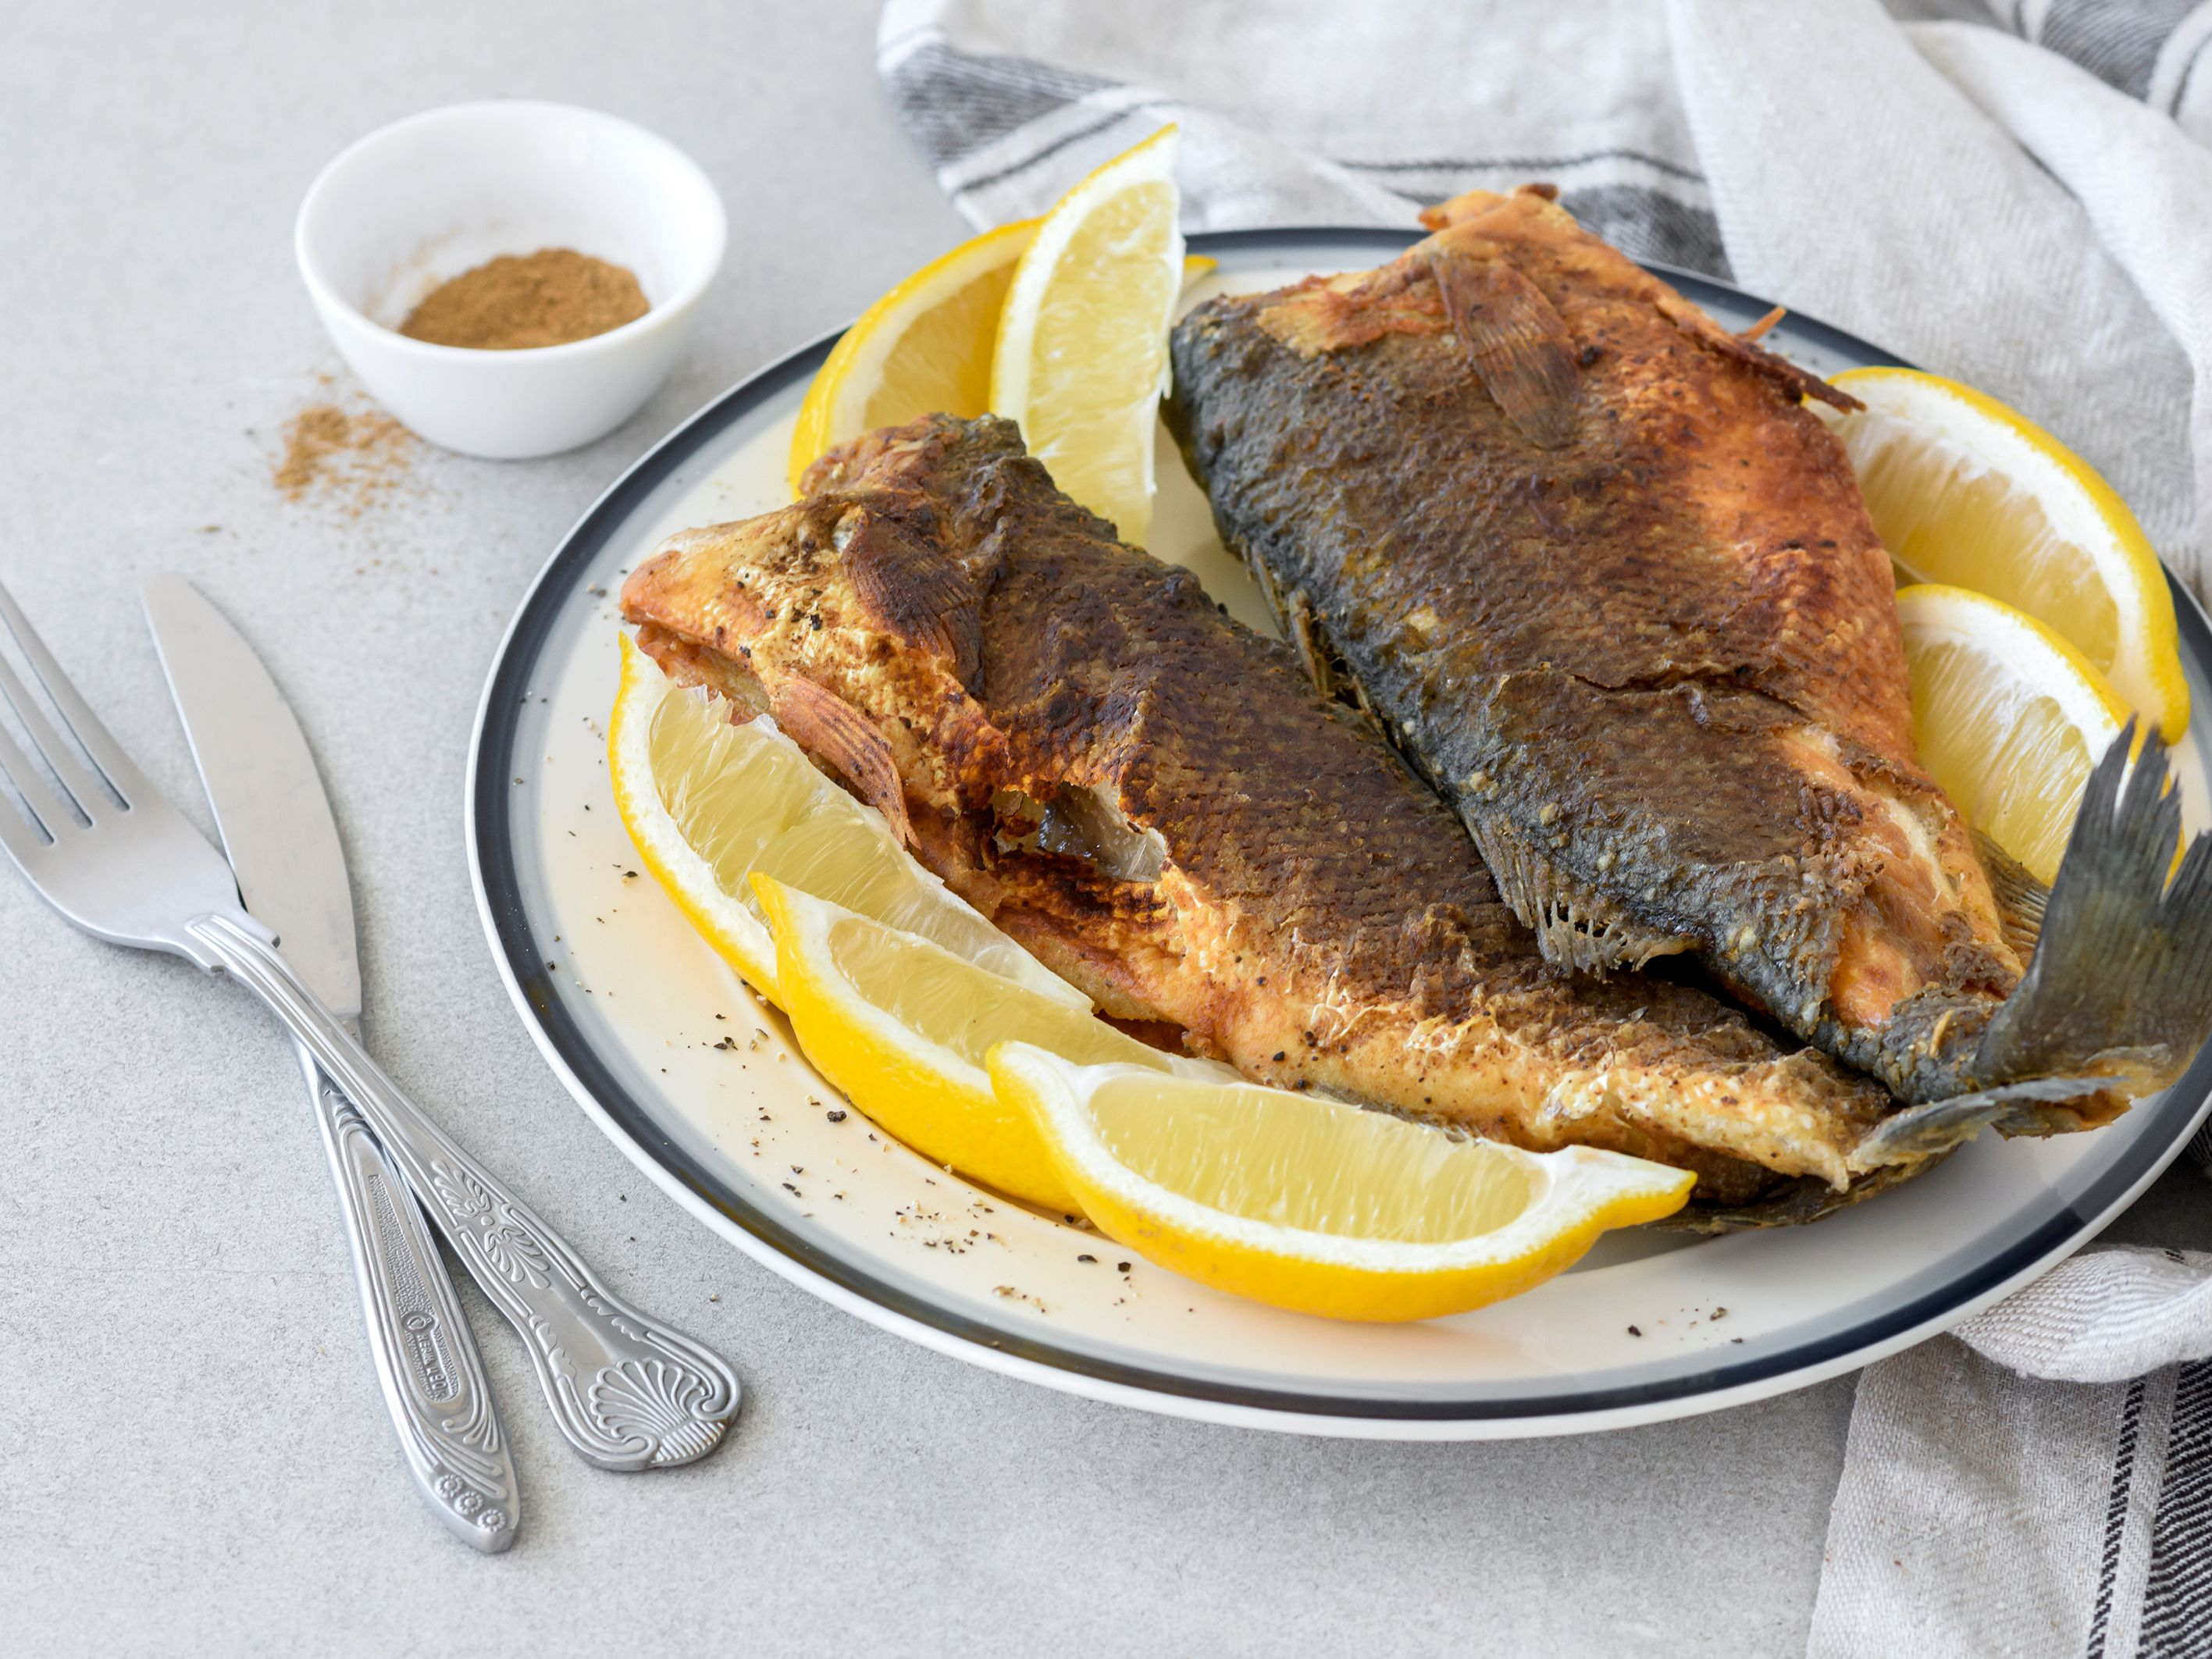 Moroccan Fried Fish Recipe With Hake Or Whiting